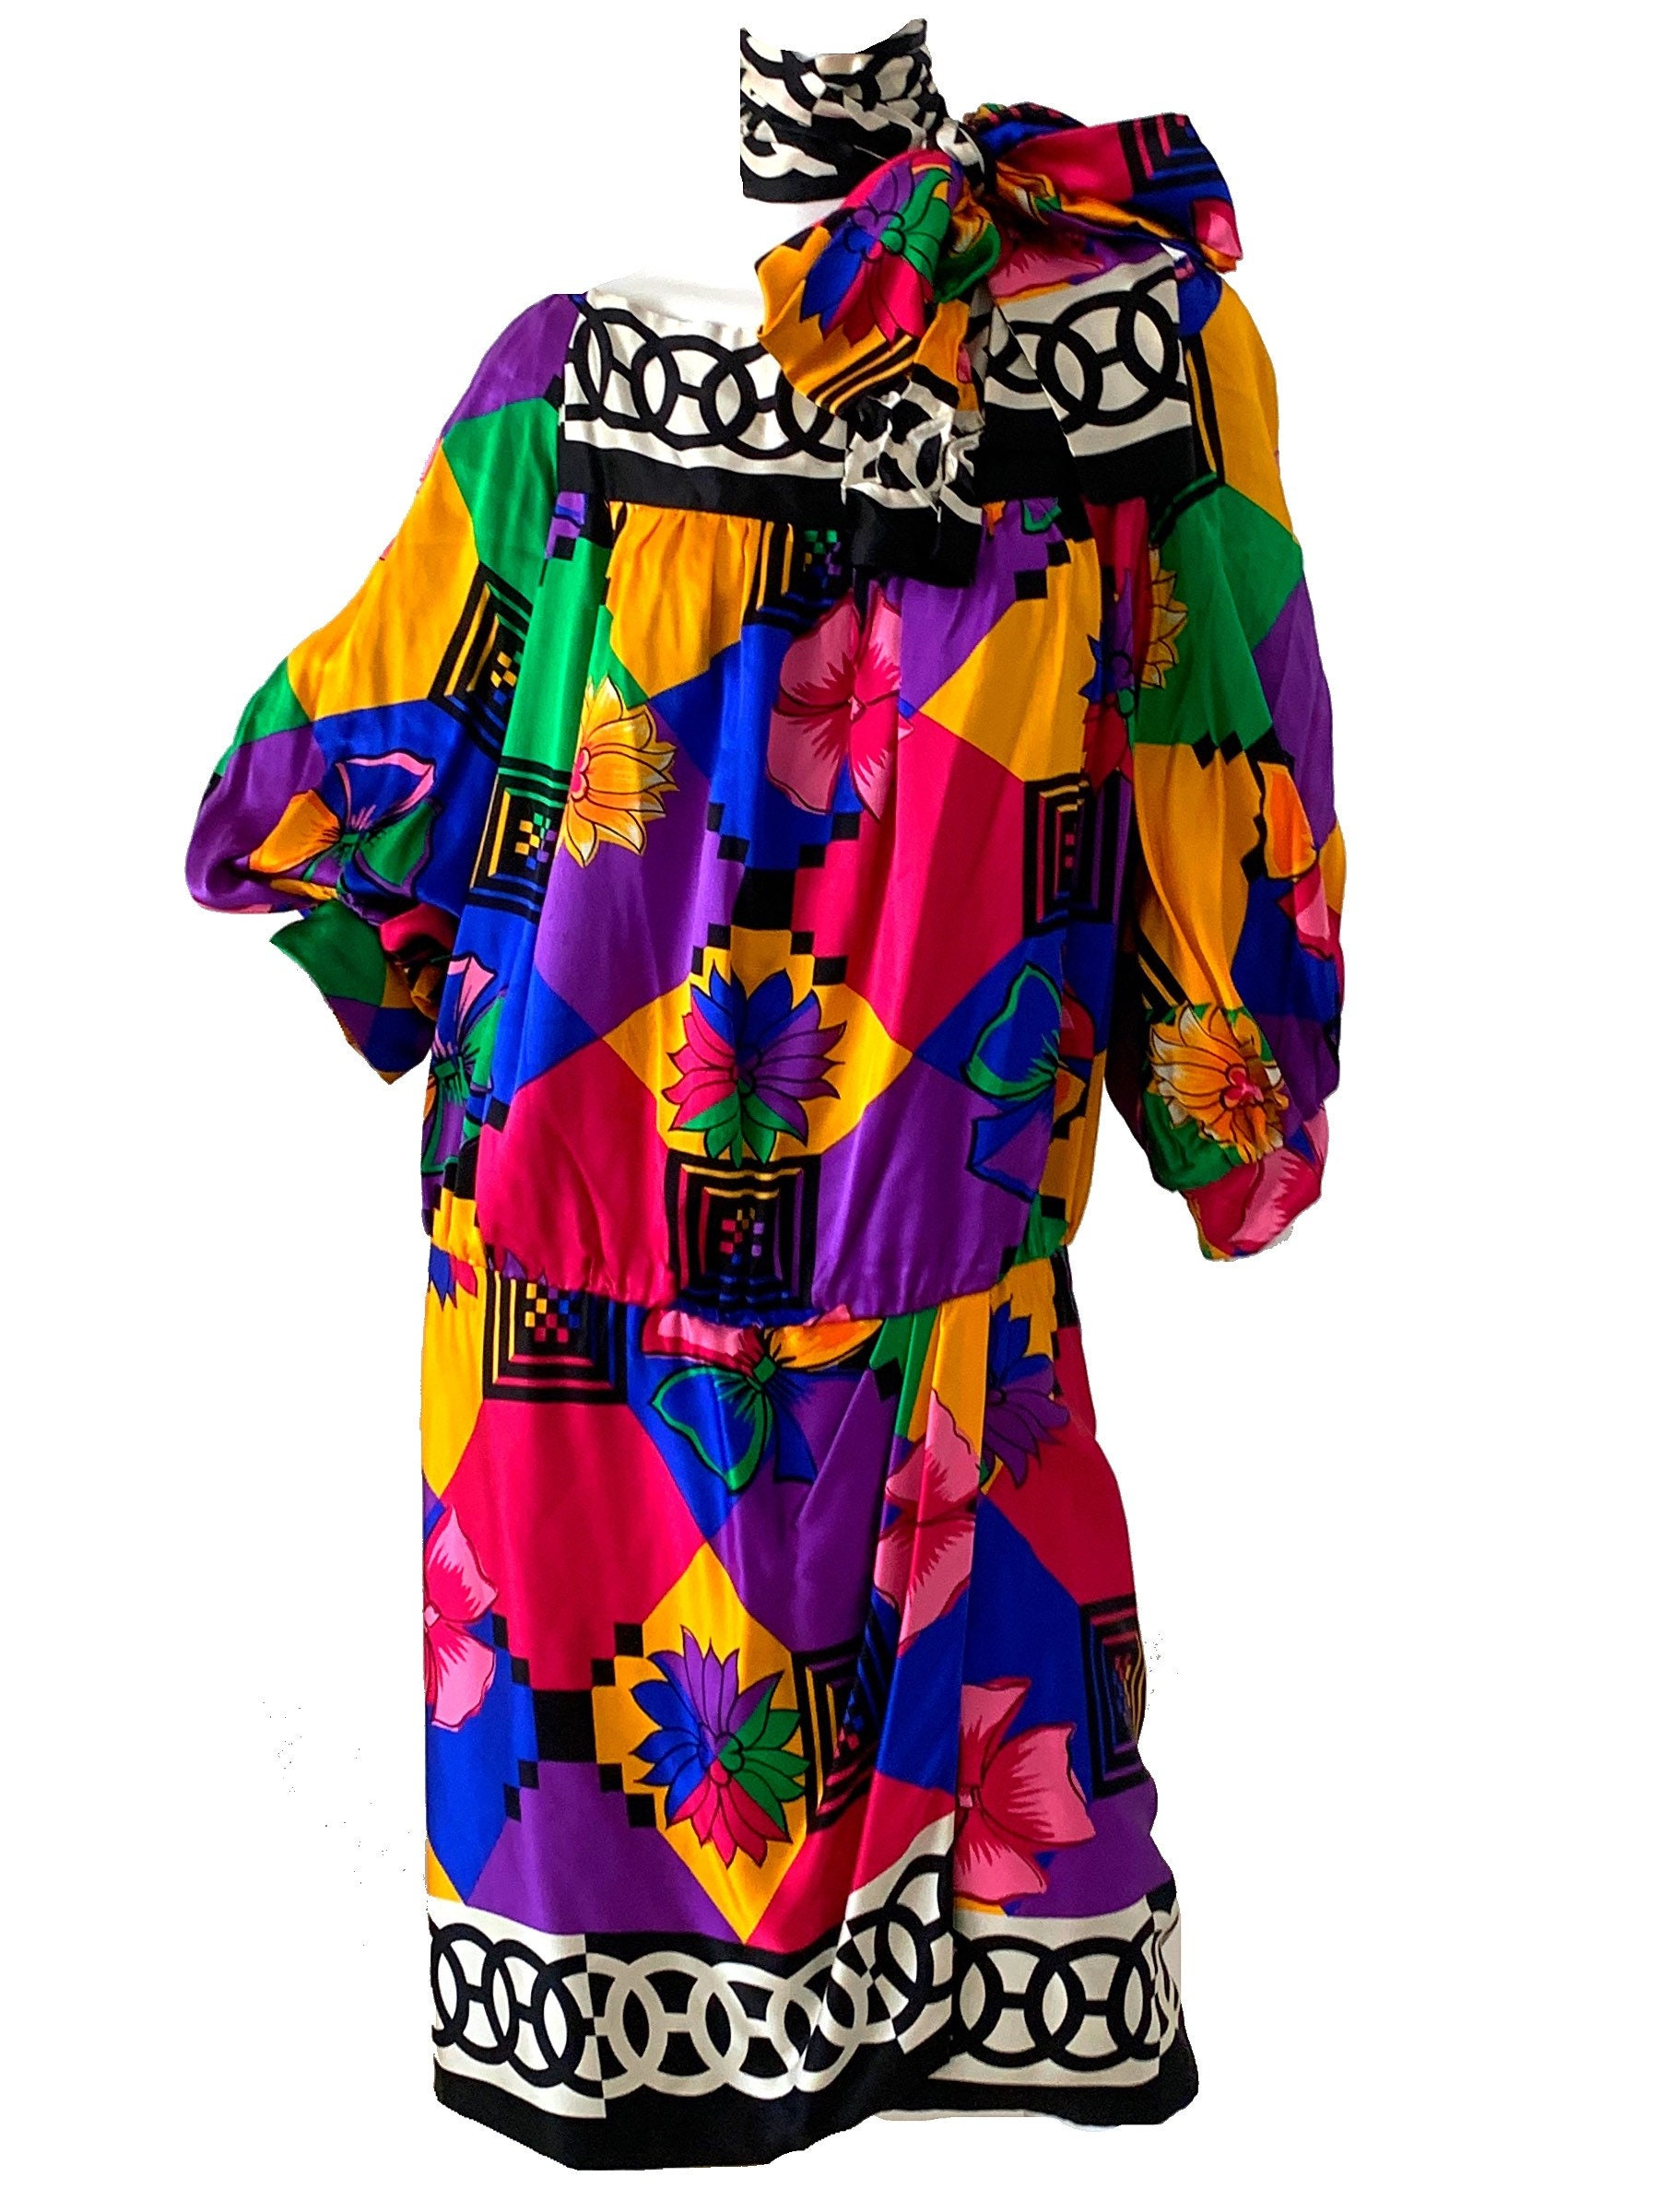 Vintage Scarf Styles -1920s to 1960s 1980S Floral Silk Geometric Dress, Party Bow Belted Wrap Dress Large $36.95 AT vintagedancer.com